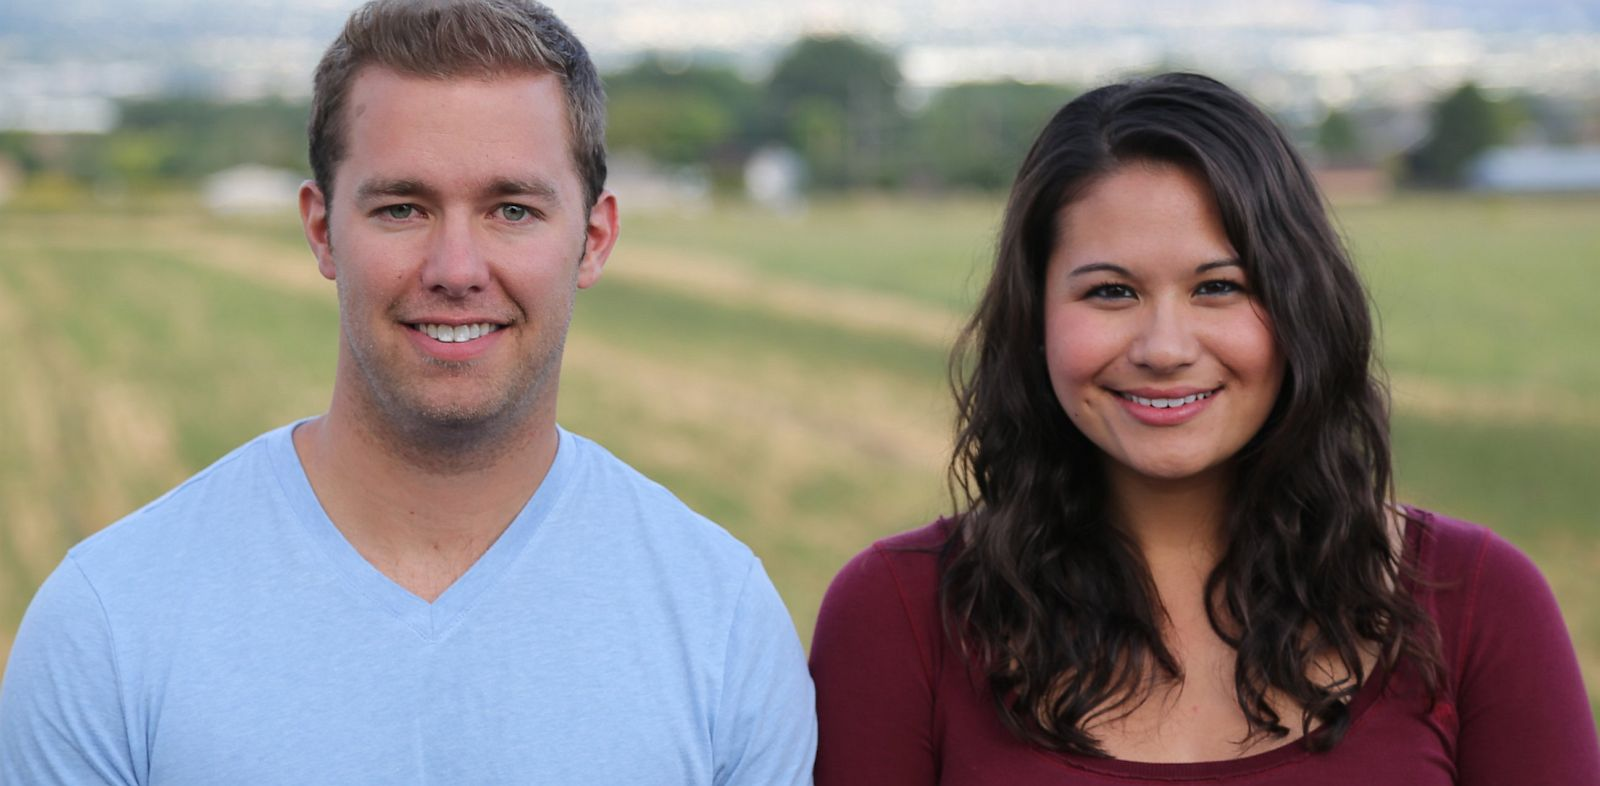 PHOTO: Nate Bagley and Melissa Joy Kong